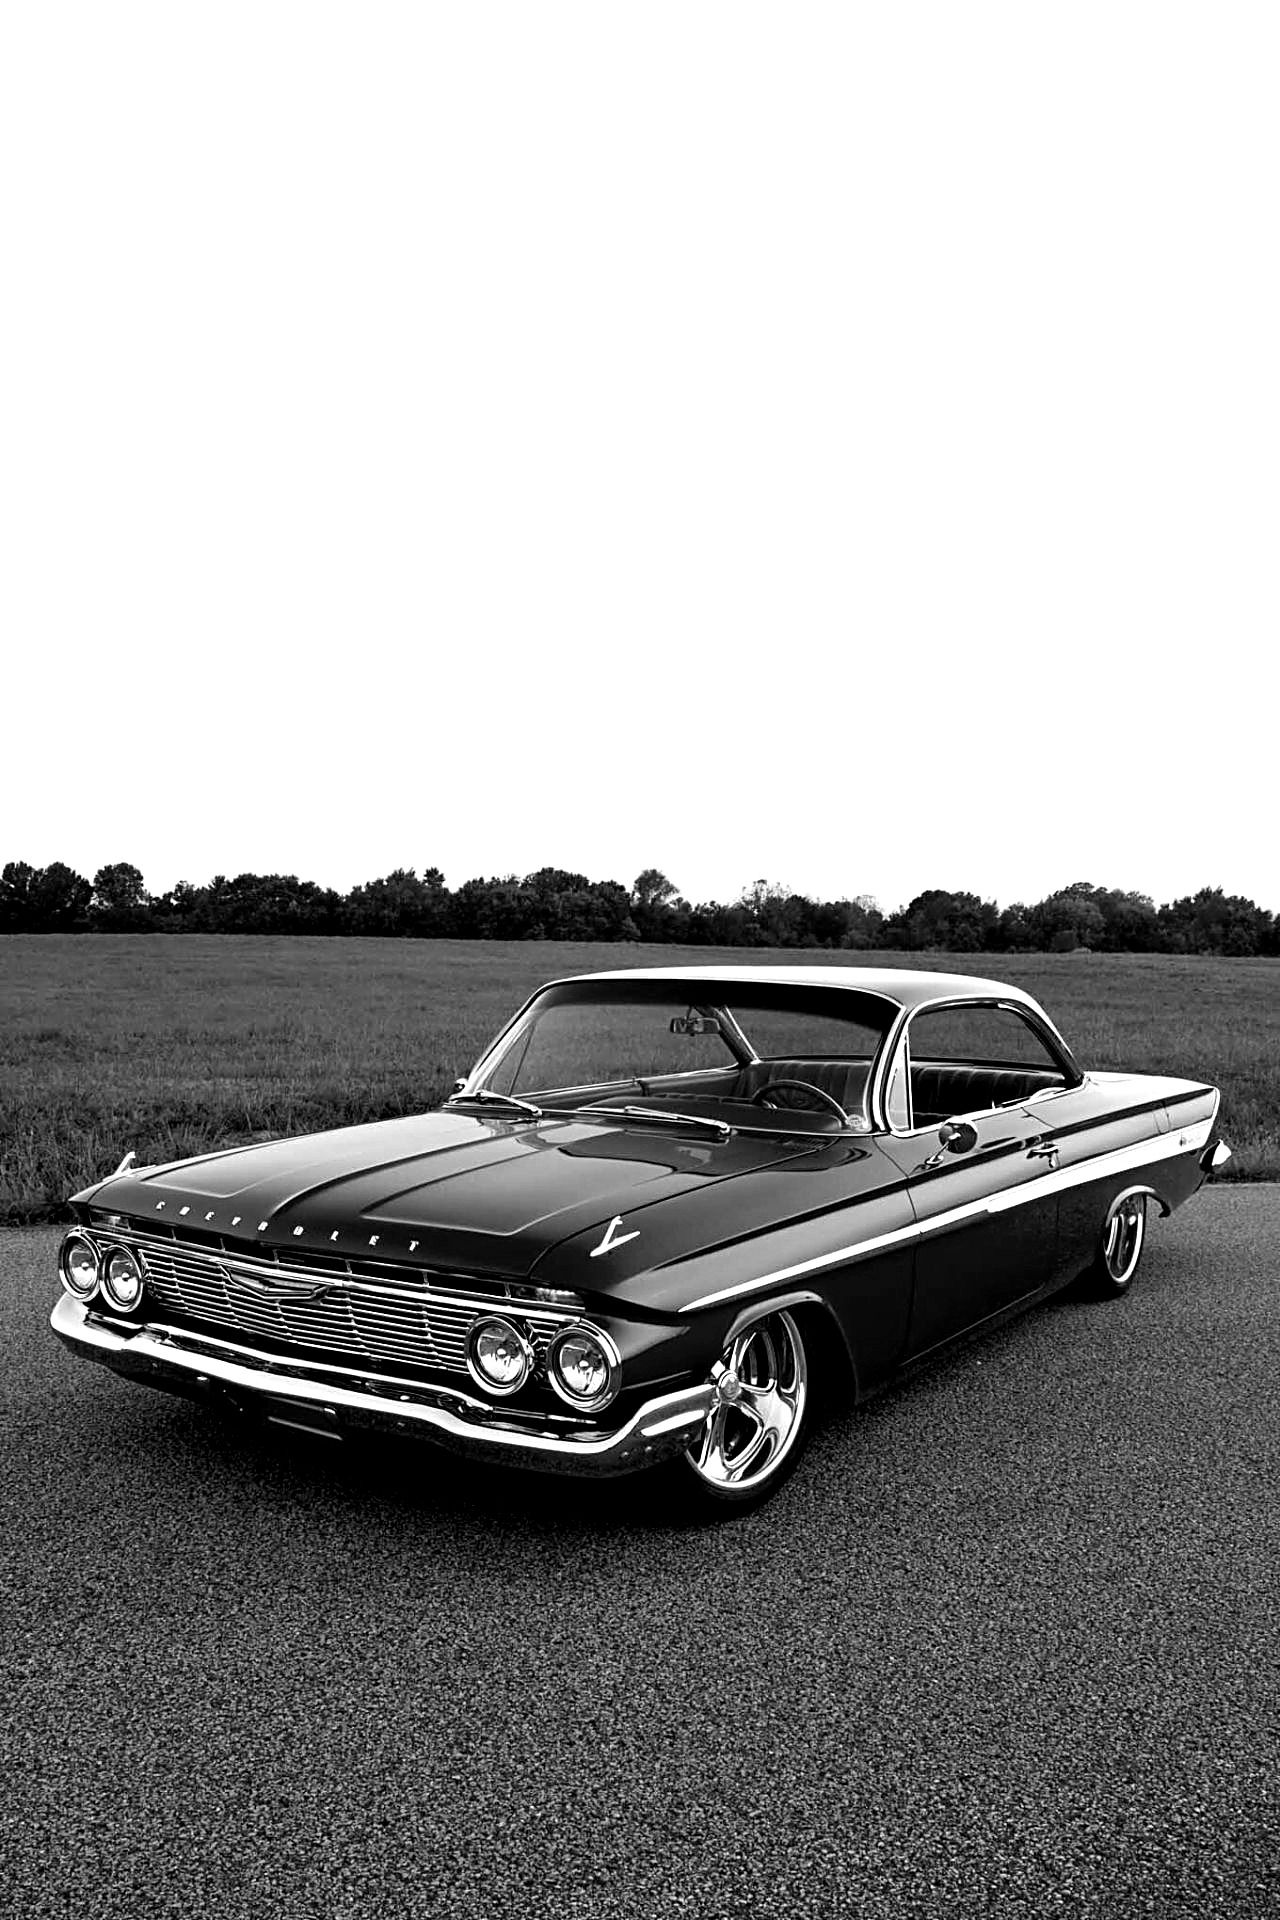 Pin By Eskeletone On Impala In 2020 With Images Classic Cars